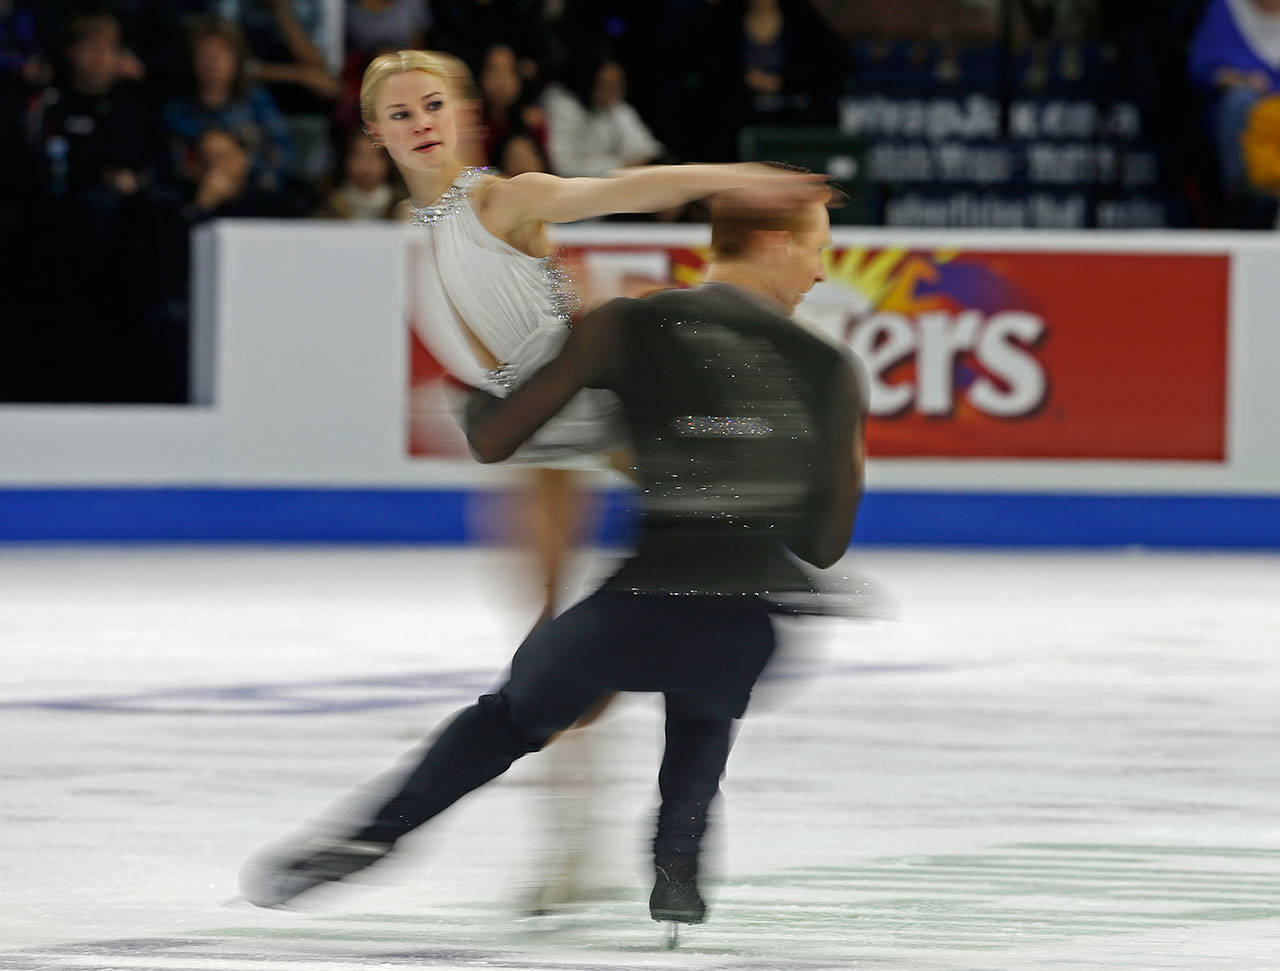 Evgenia Tarasova and Vladimir Morozov perform during the pair's free skating program at Skate America, Friday, Oct. 19, 2018, in Everett, Wash. (Olivia Vanni / The Herald)